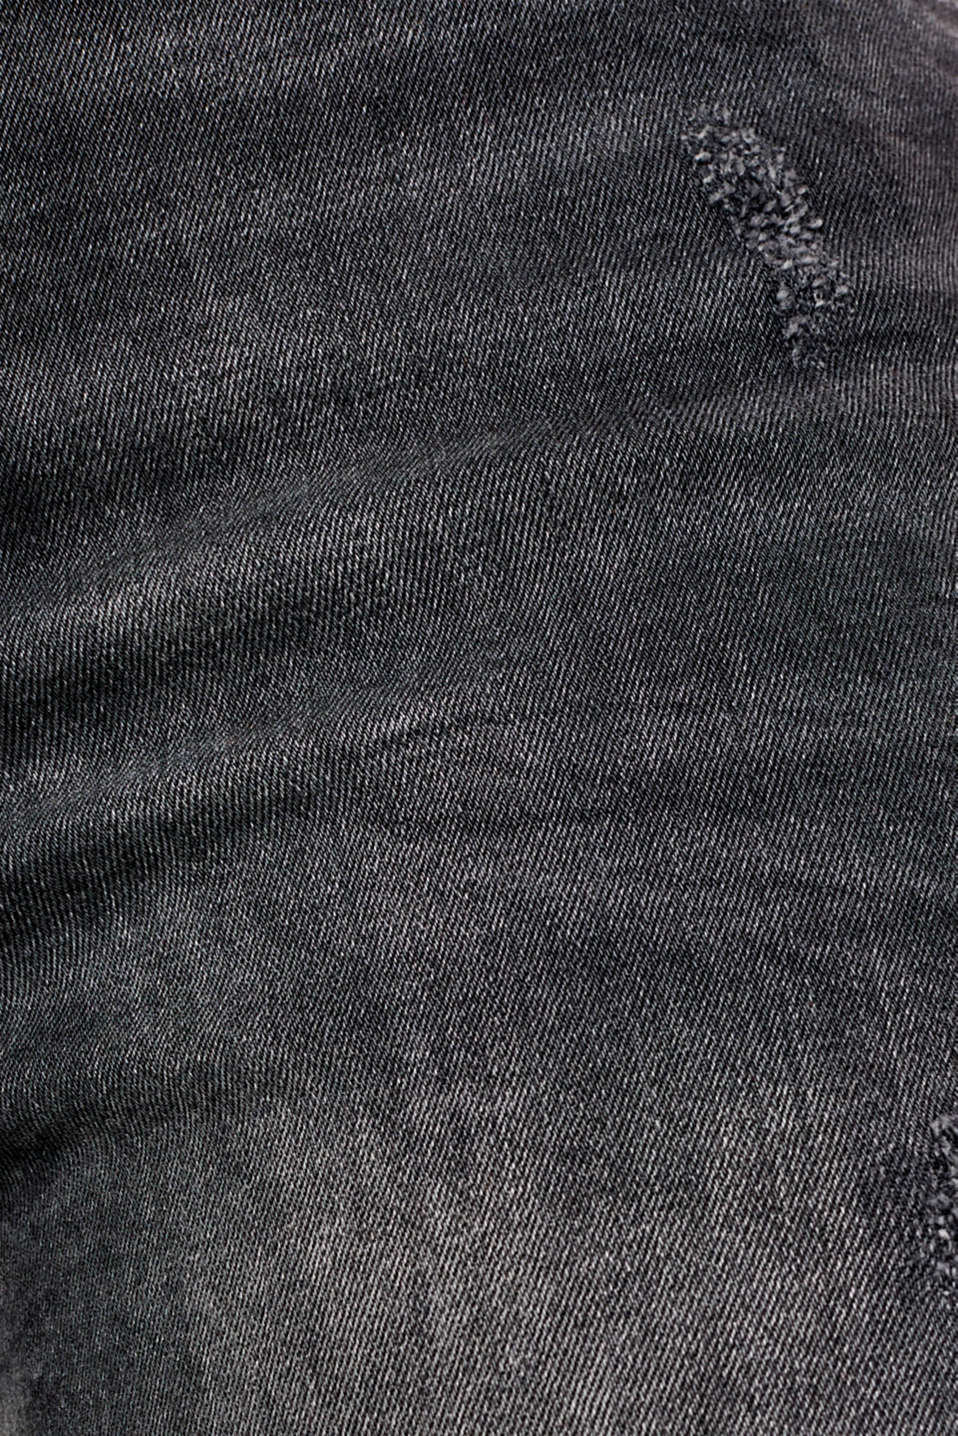 Stretch jeans with zip detail, BLACK MEDIUM WASH, detail image number 4